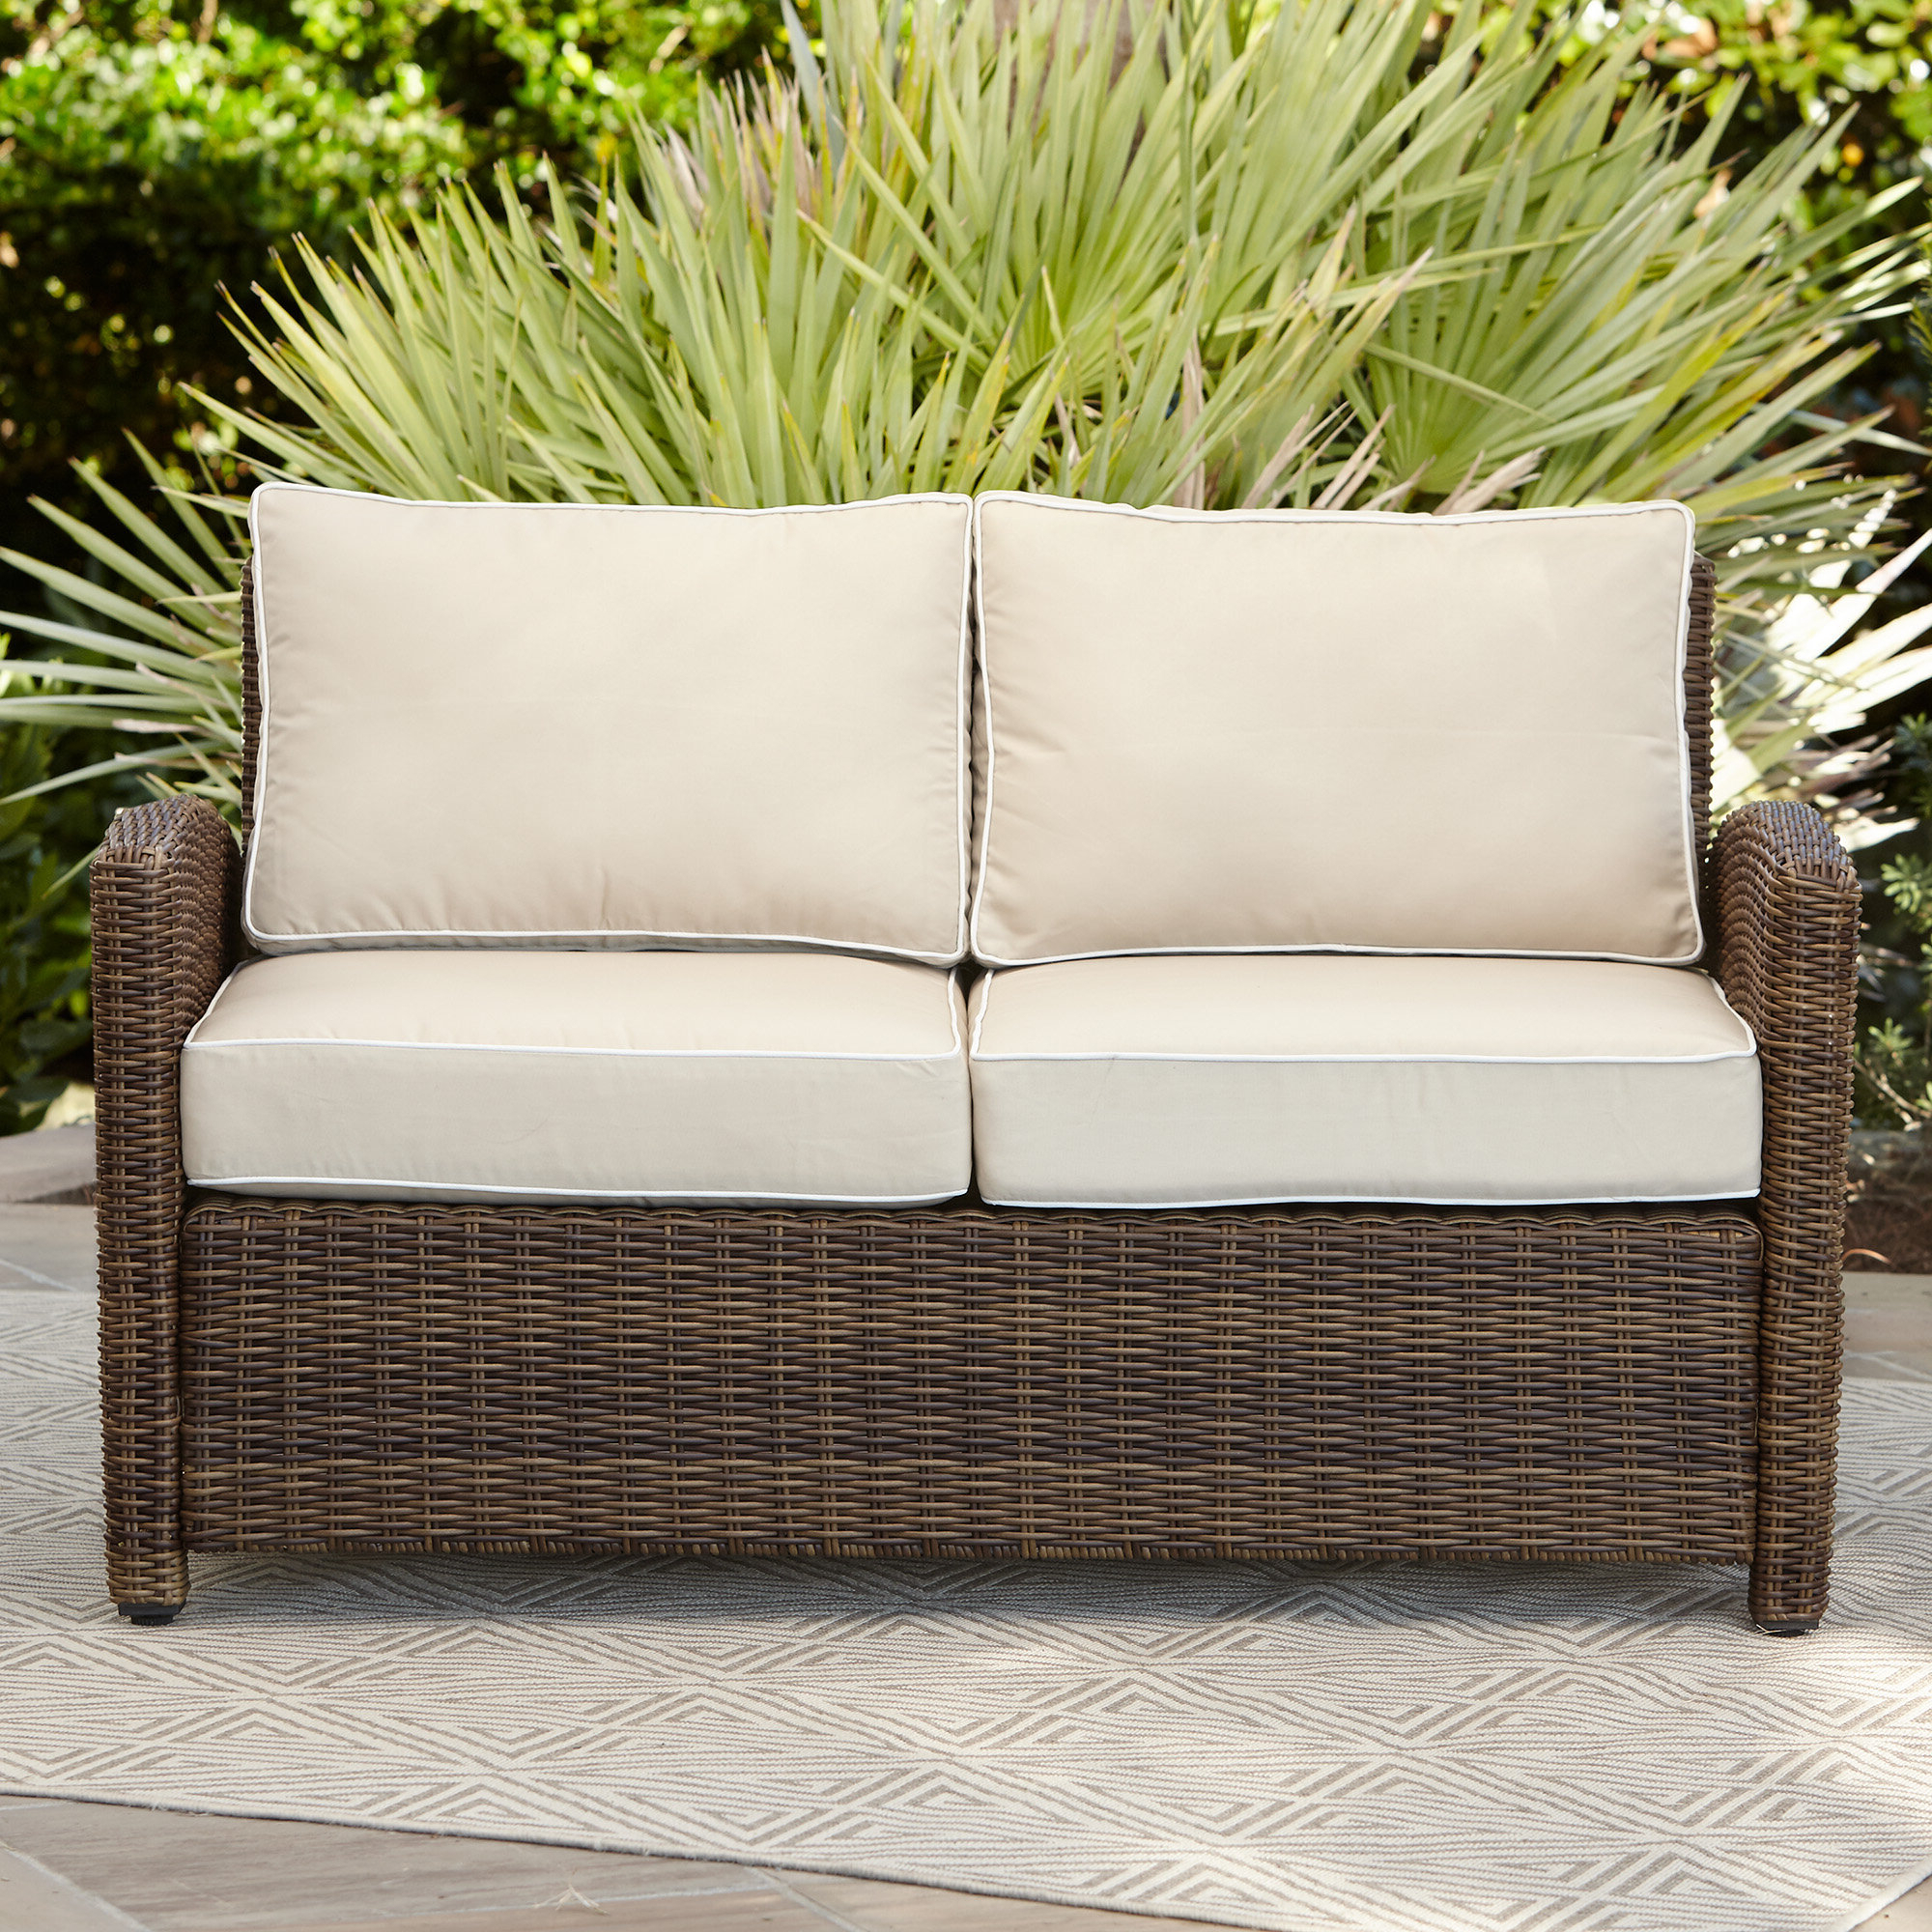 Most Recently Released Birch Lane™ Heritage Lawson Wicker Loveseat With Cushions With Saleem Loveseats With Cushions (View 13 of 25)